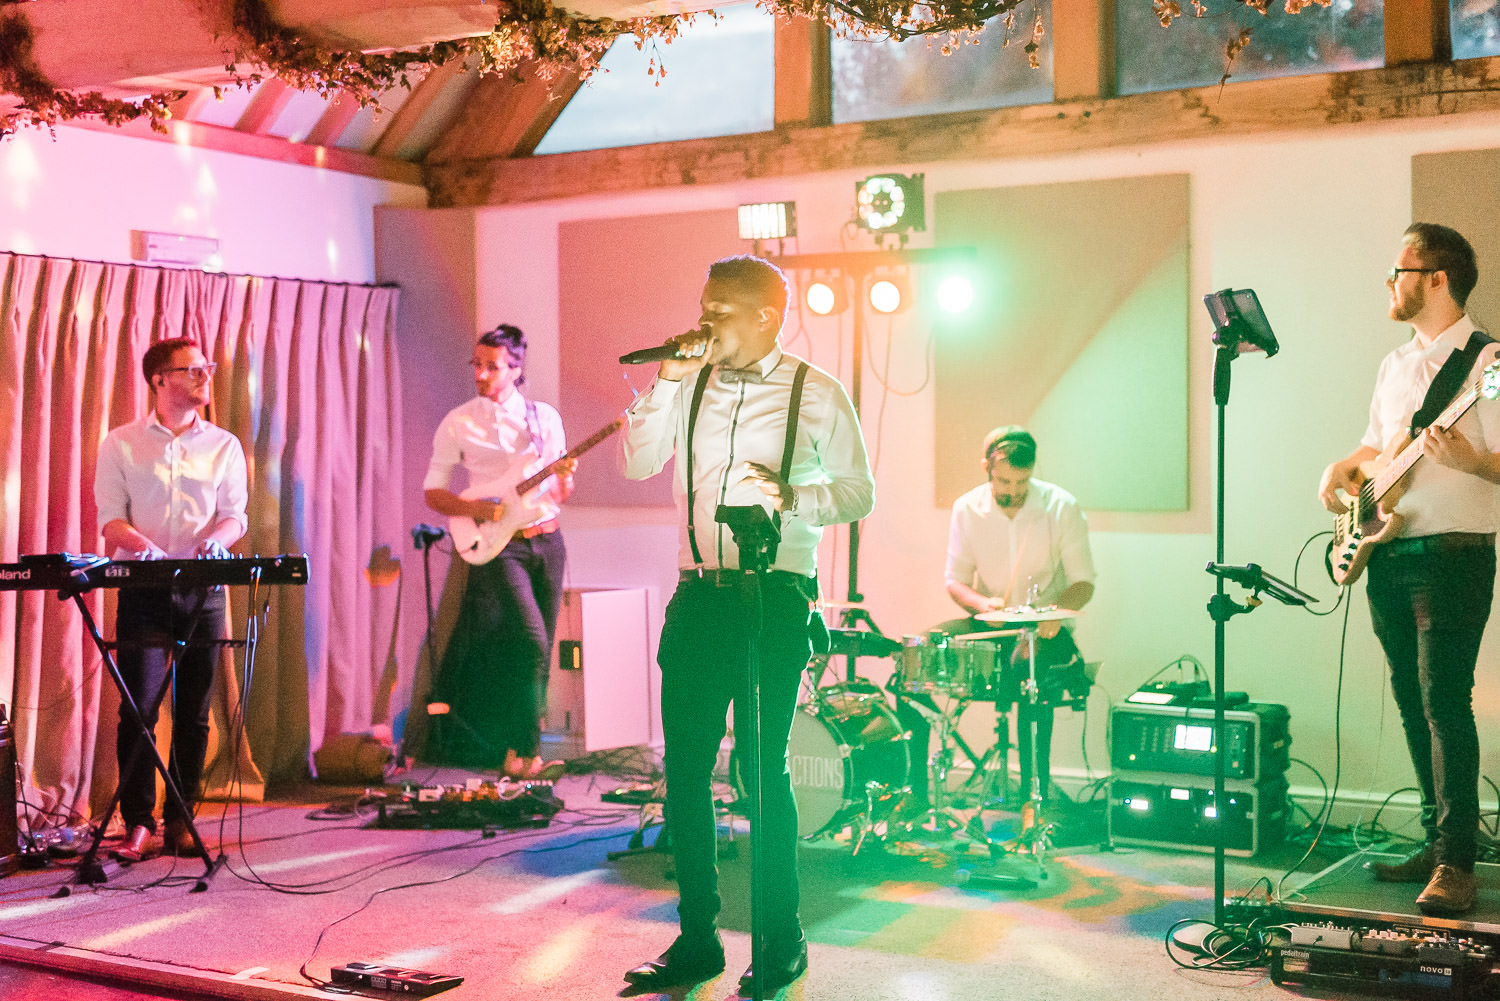 The Distractions Band being awesome at a Wethele Manor wedding party.